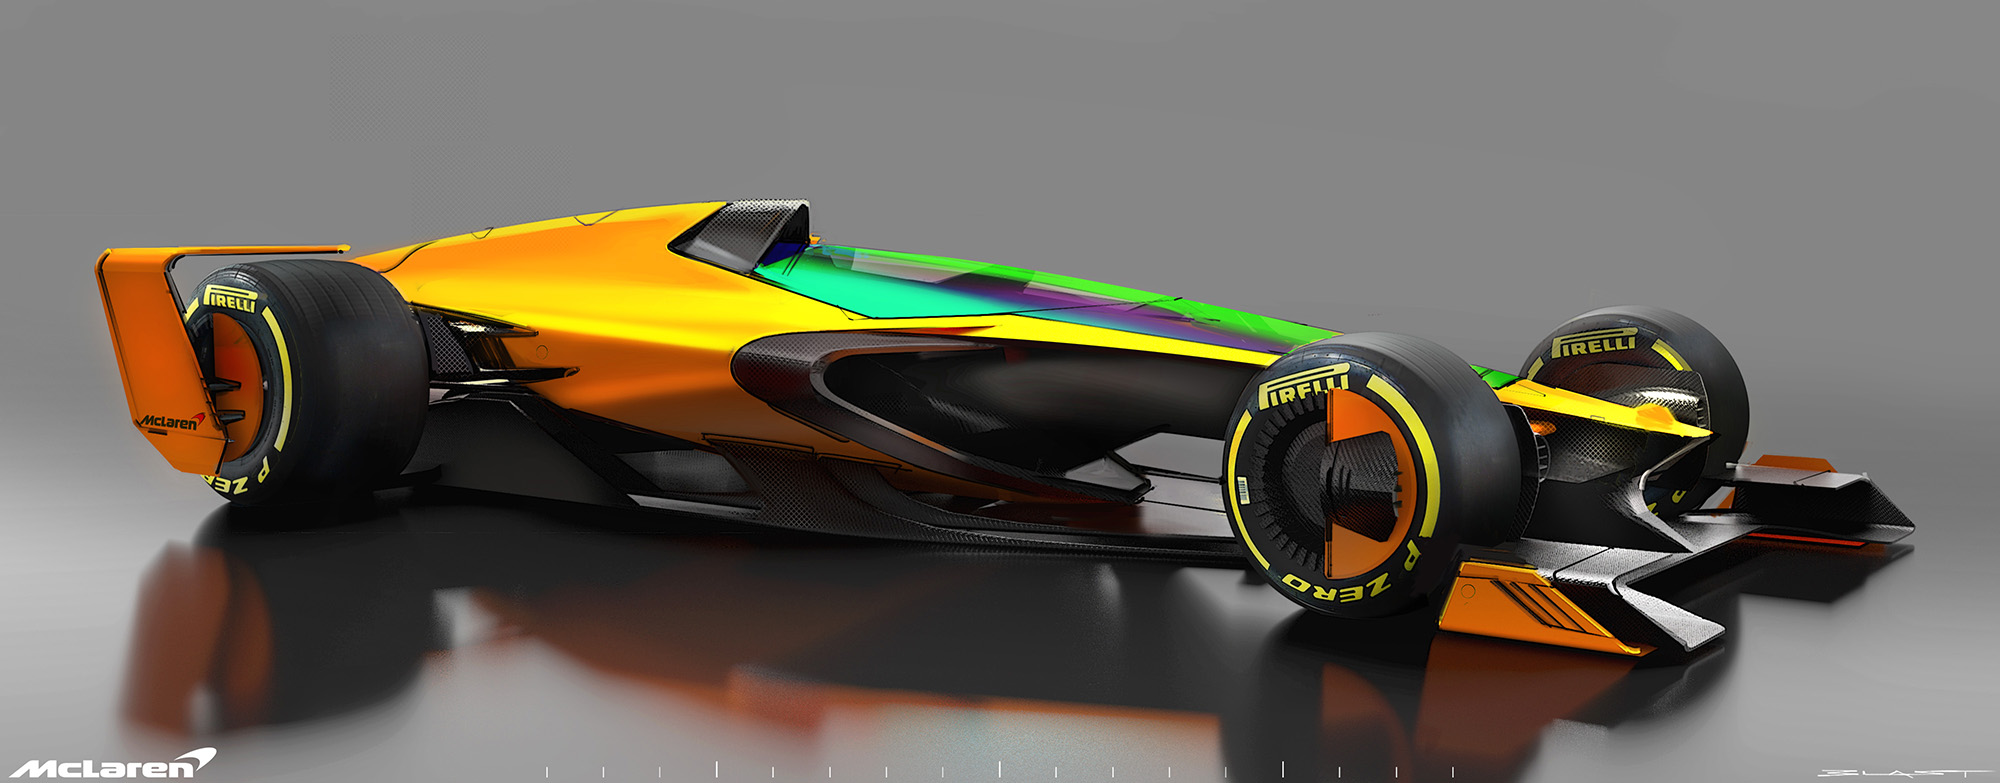 MCLAREN_Ext_Front_GP1_V2_blast_UPLOAD.jpg